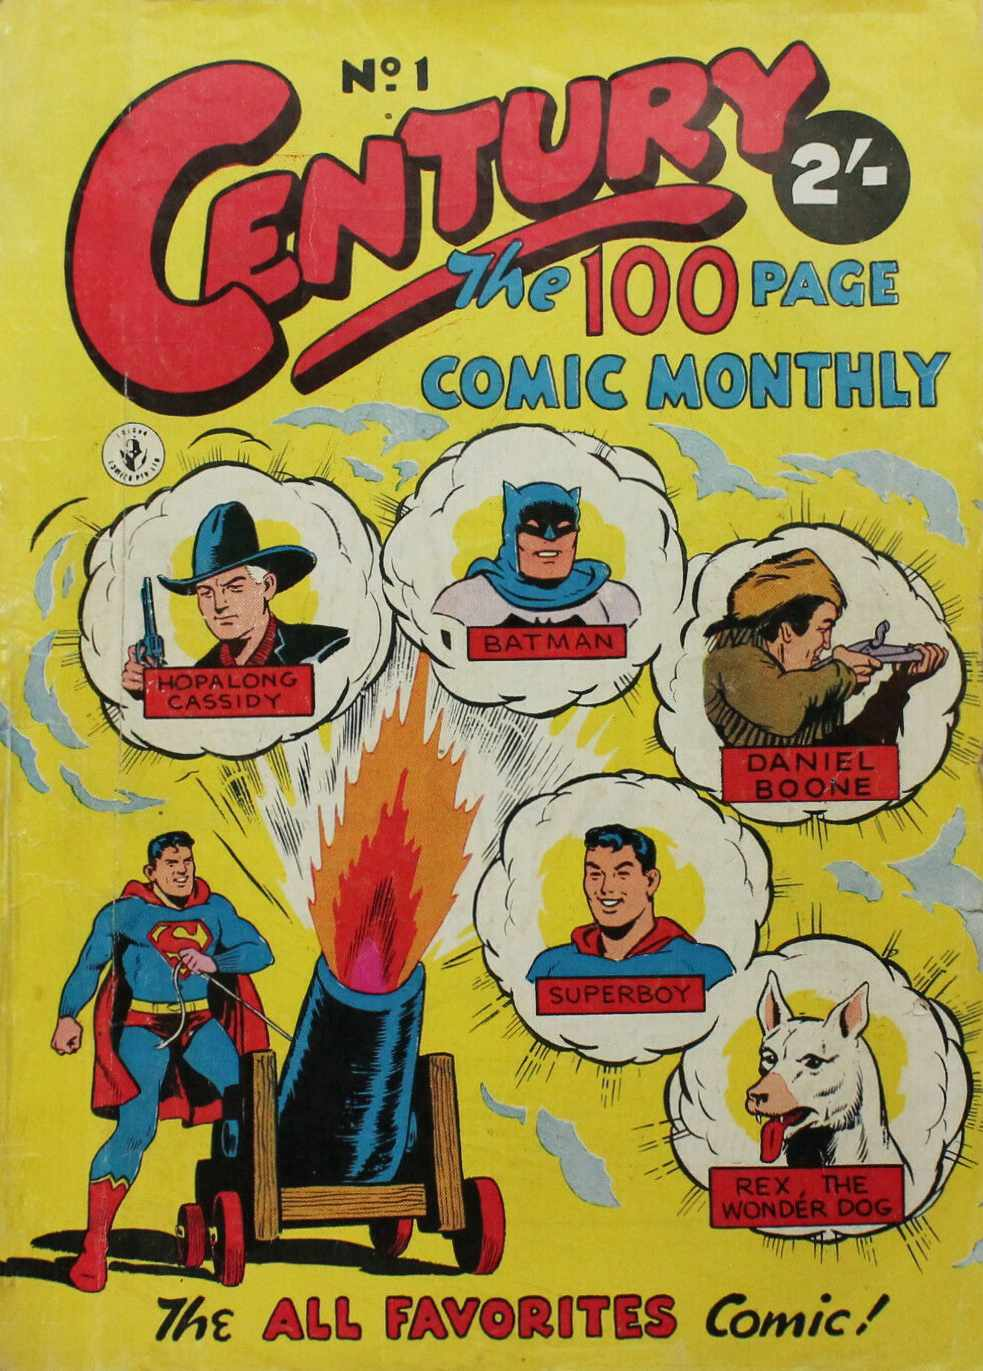 Century The 100 Page Comic Monthly 1, 1956